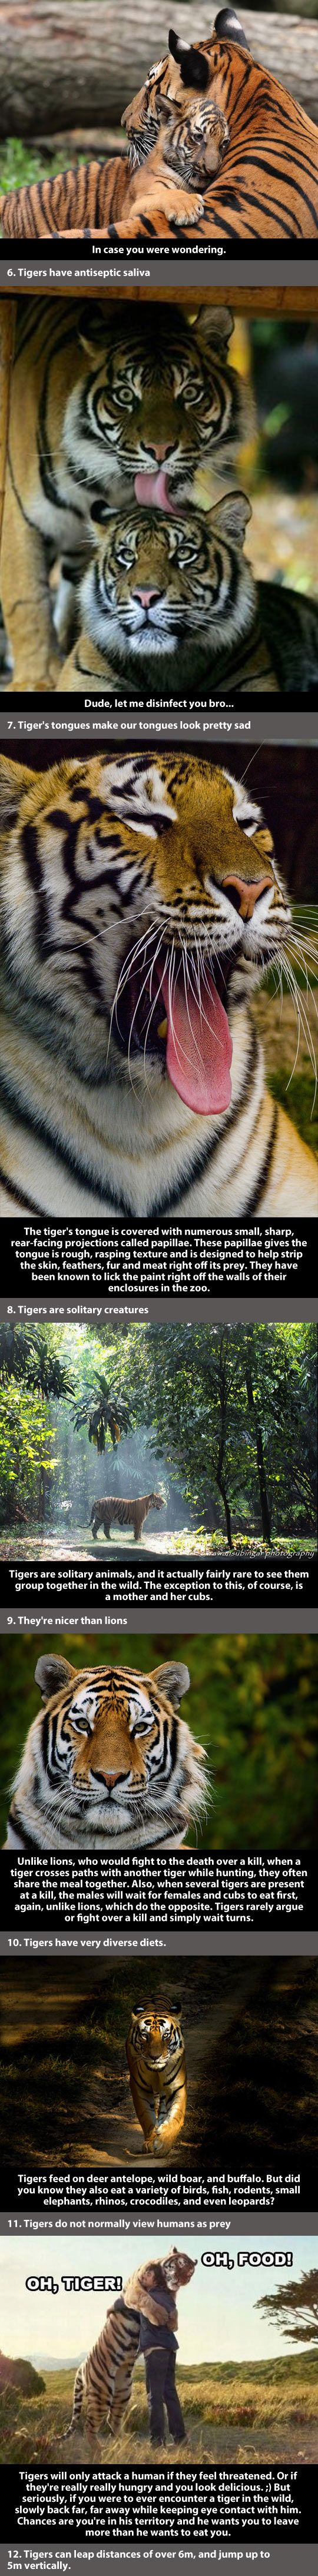 Tigers are awesome! I'm going to find a documentary on Netflix.